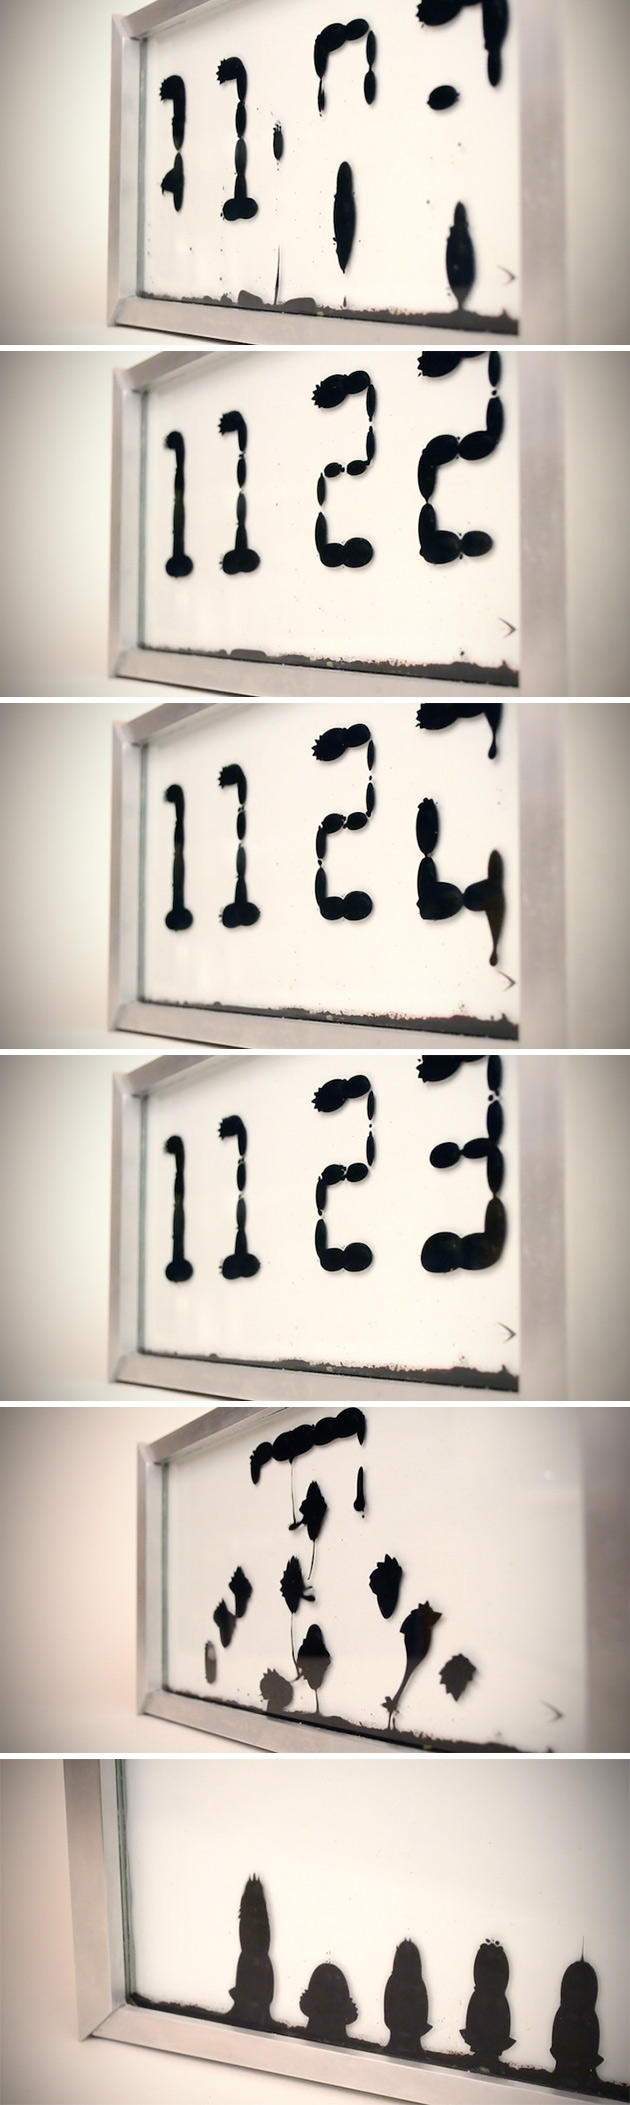 Ferrofluid Clock